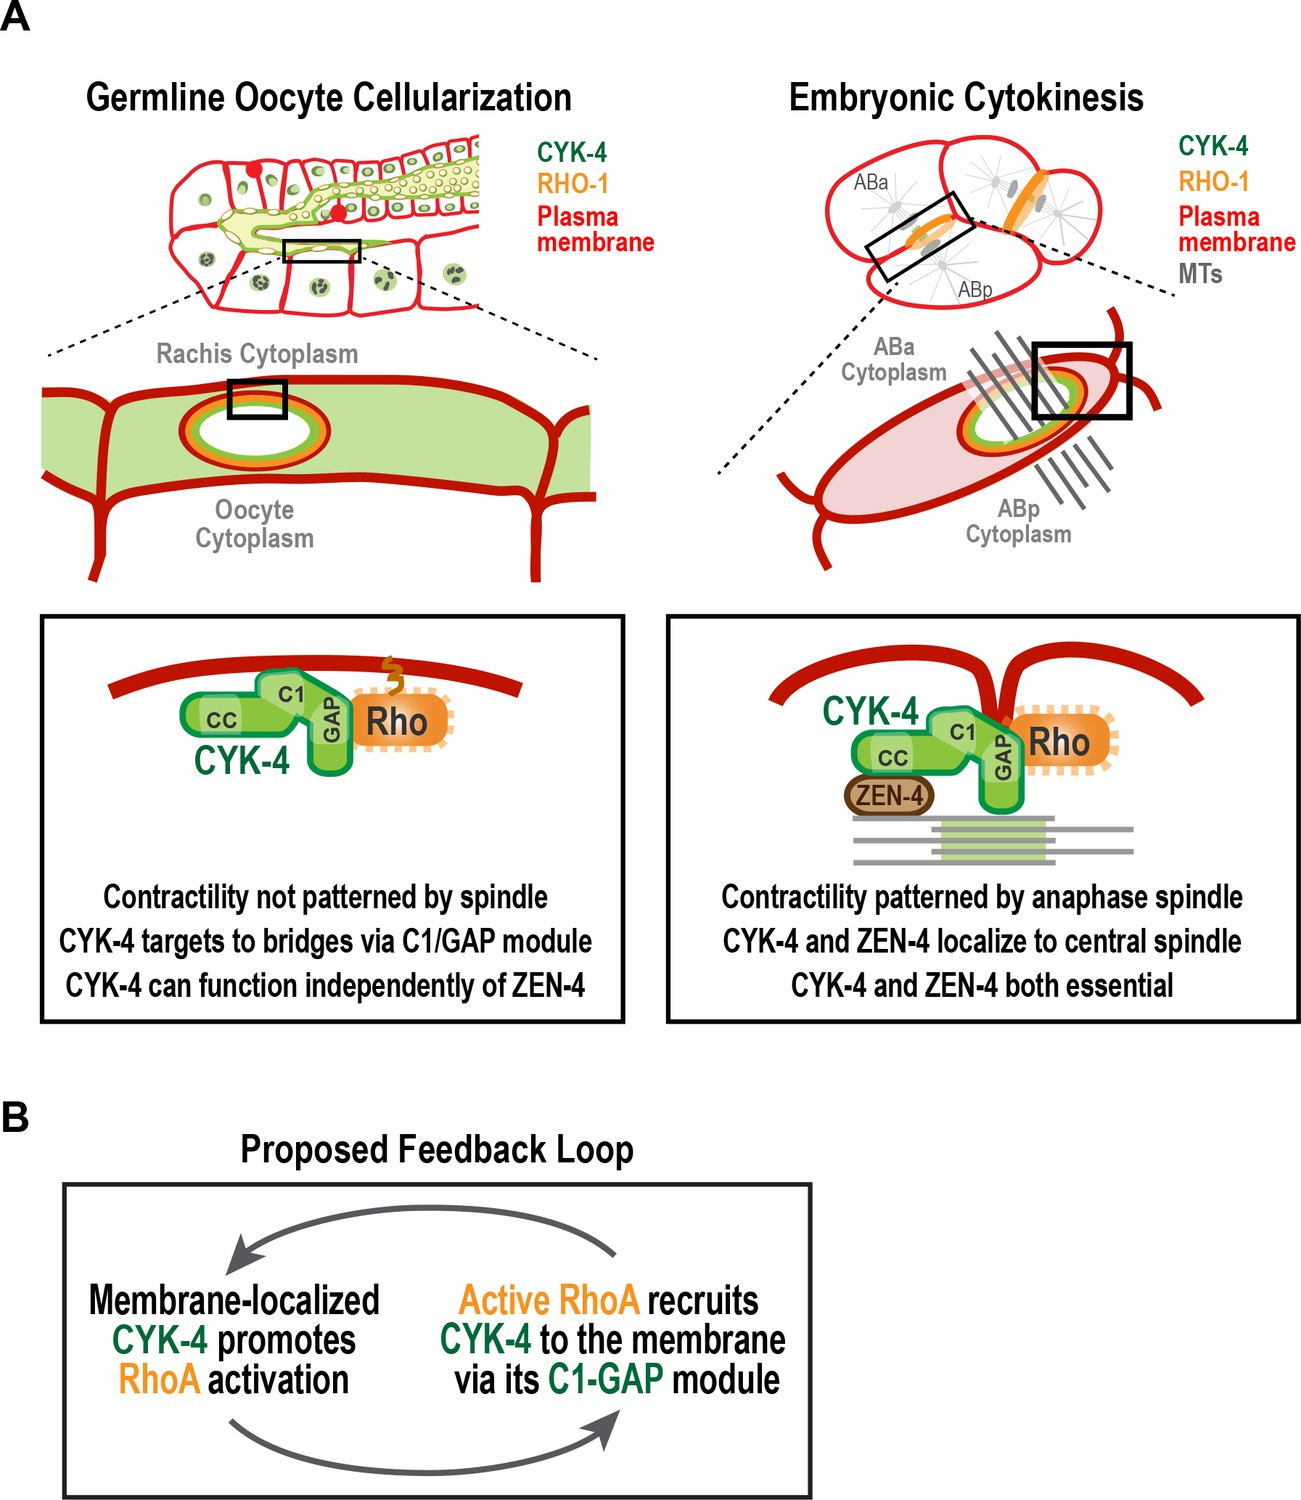 Cyk 4 Functions Independently Of Its Centralspindlin Partner Zen 4